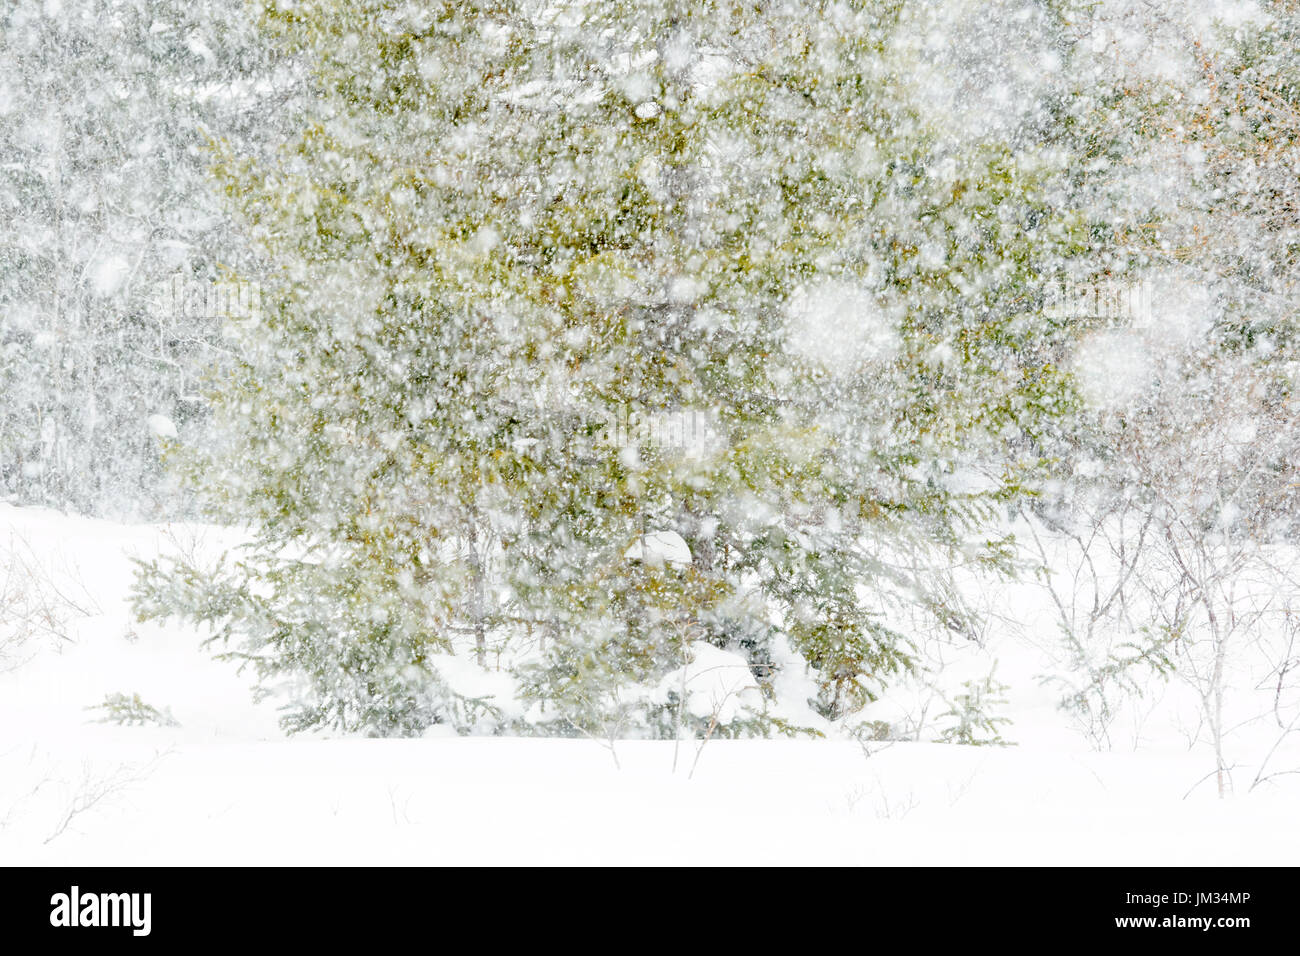 Blizzard with heavy snowfall in taiga forest, wapusk national park, Manitoba, Canada. - Stock Image